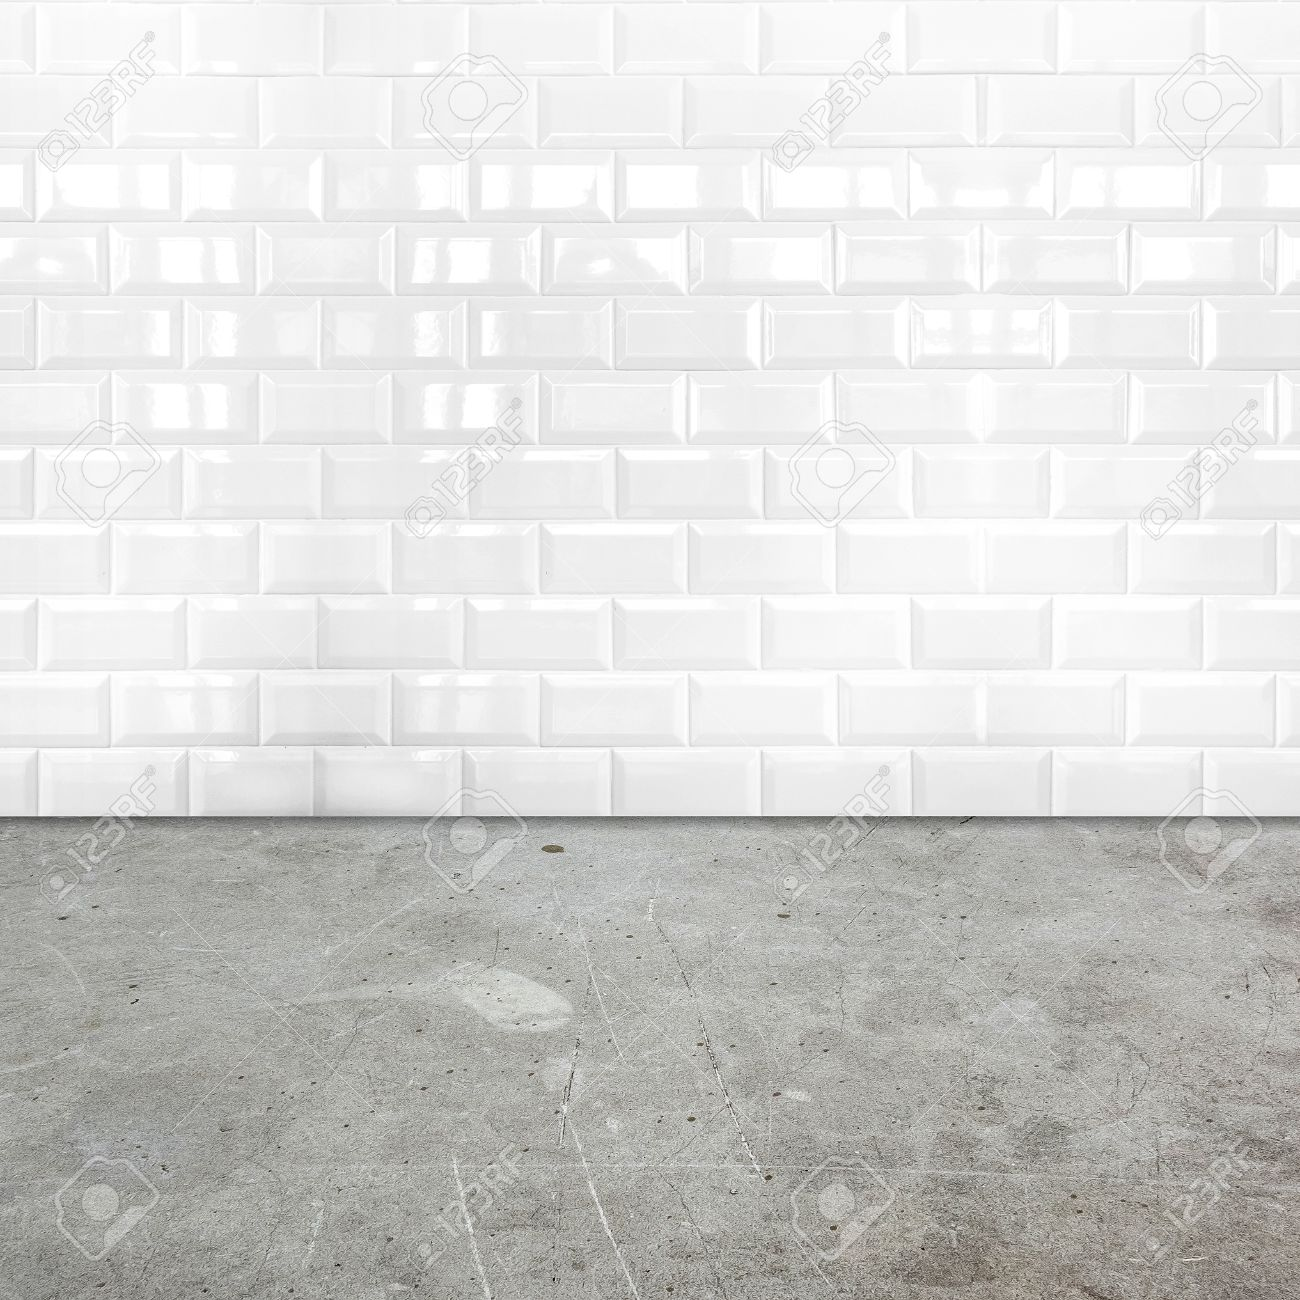 Room perspective white ceramic tile wall and cement ground stock room perspective white ceramic tile wall and cement ground stock photo 28341519 dailygadgetfo Choice Image